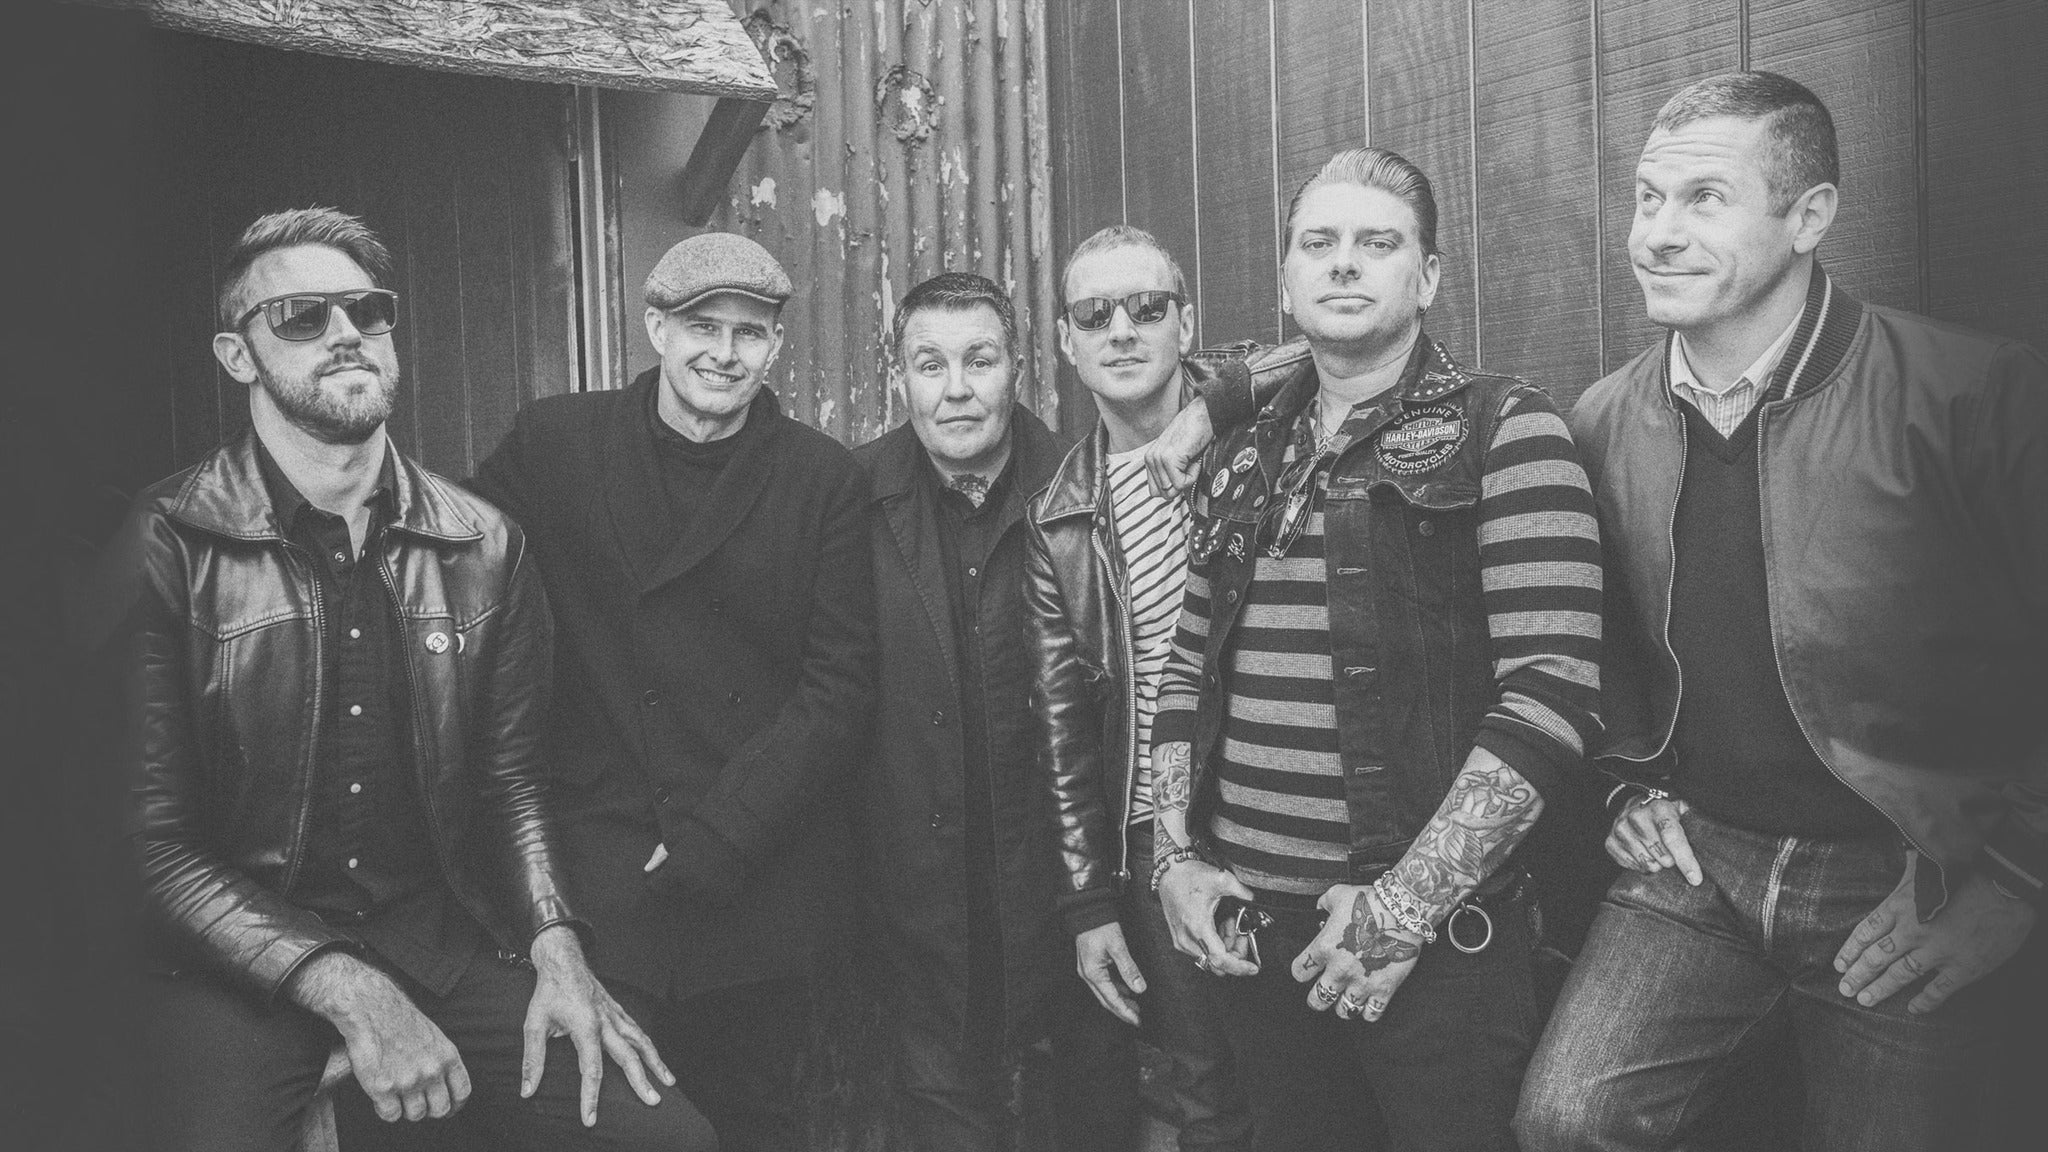 Dropkick Murphys w/ Flogging Molly at Mesa Amphitheatre